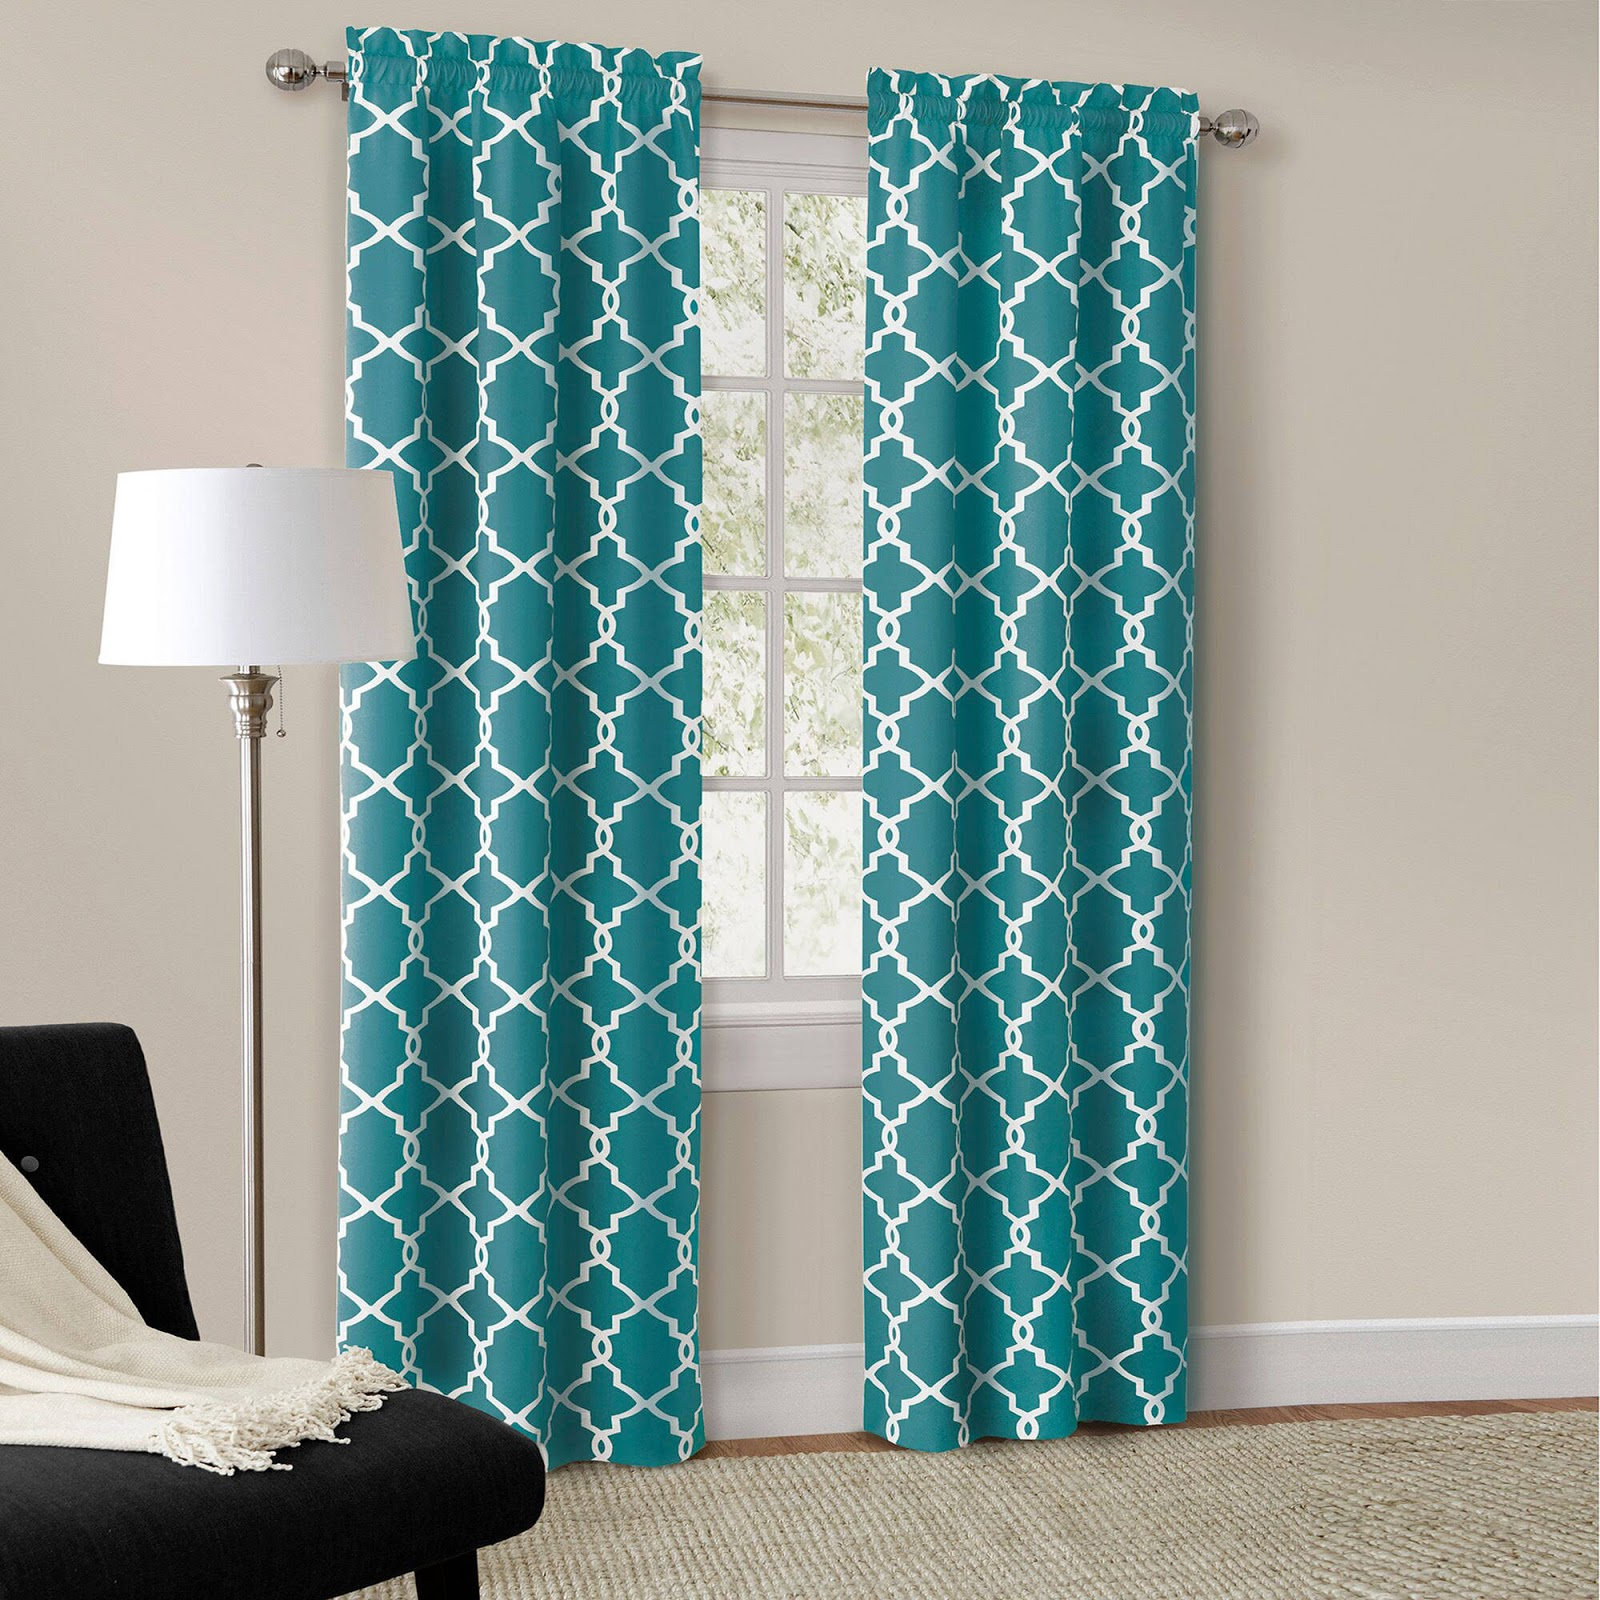 Curtains For Door Windows Doors With Glass Small